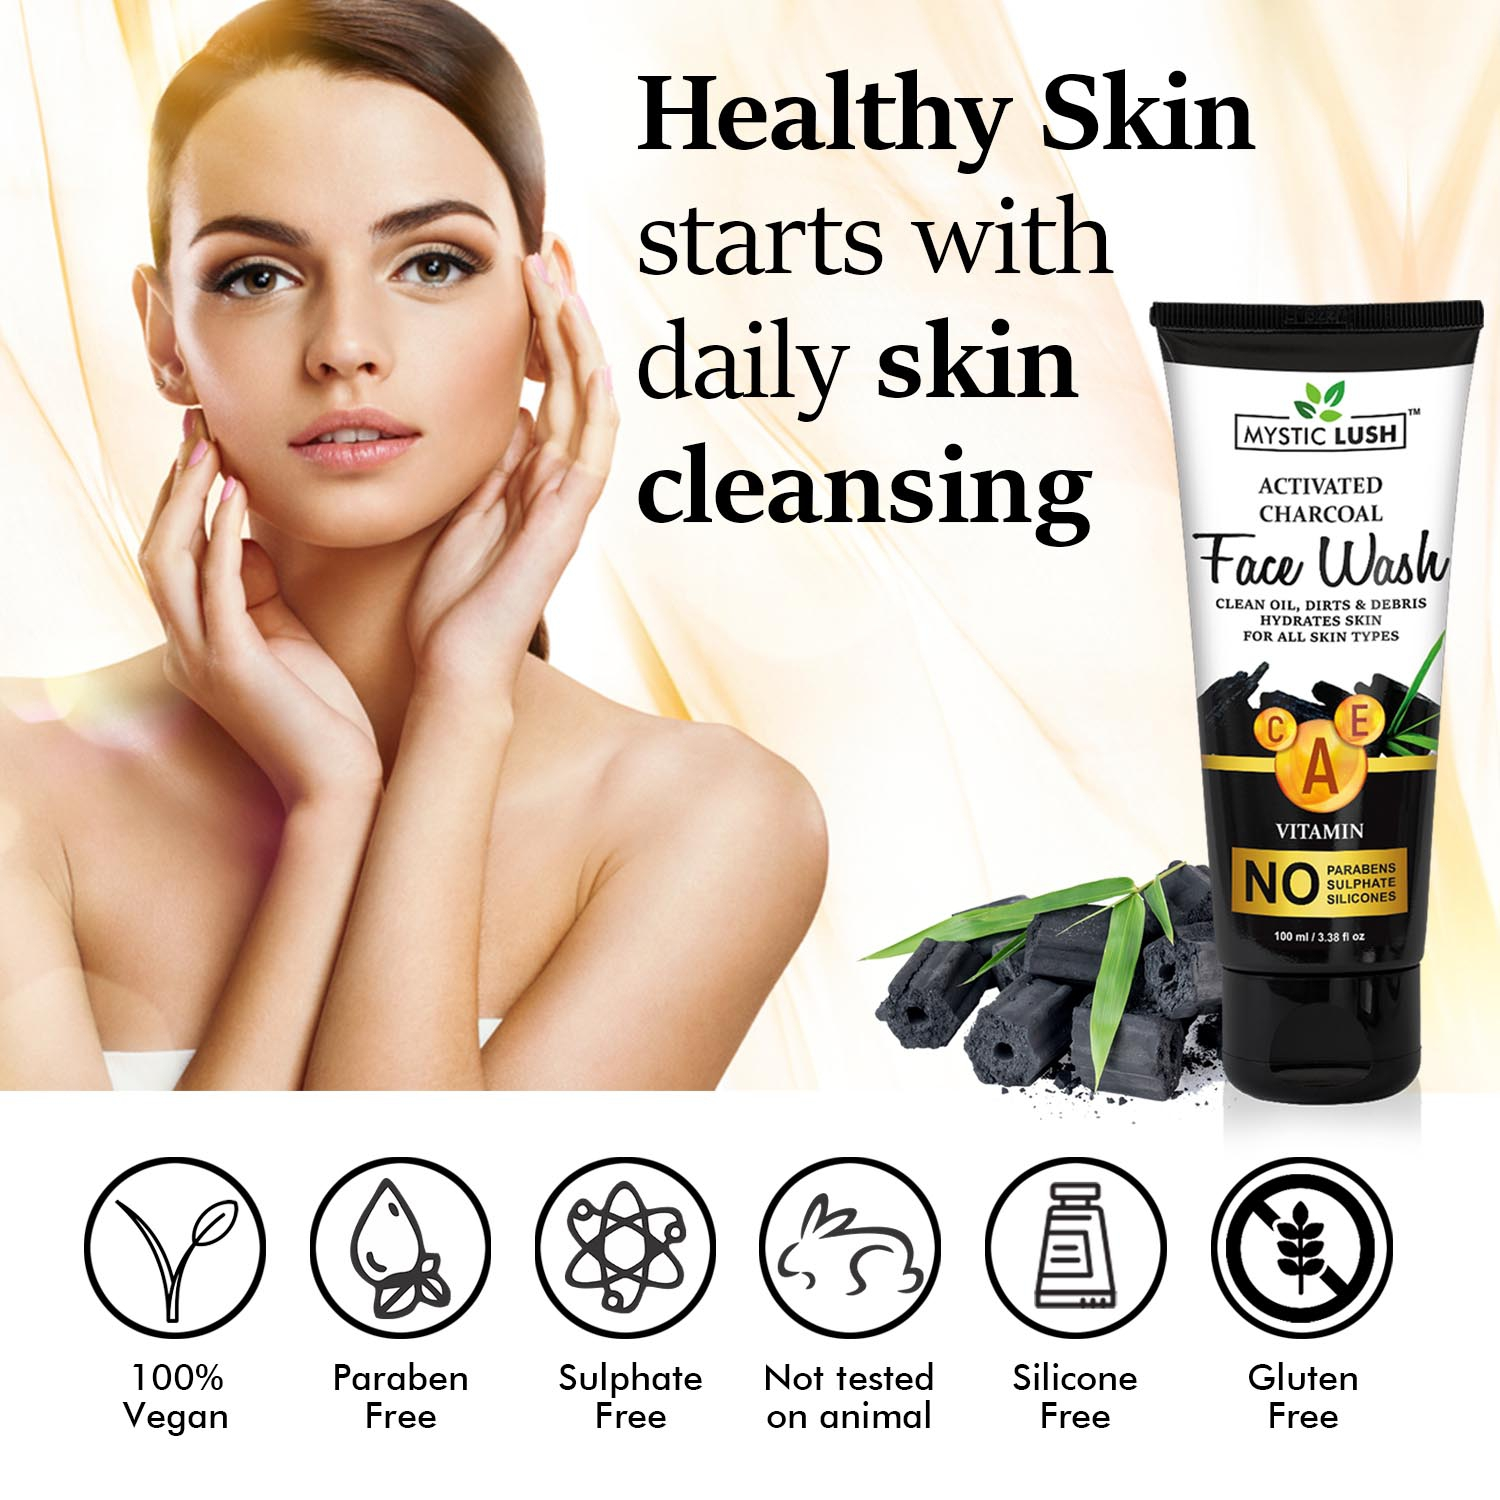 Mystic Lush Activated Charcoal Face Wash With Vitamin A,C,E & Aloe Vera For Oil Control, Pollution Defense And Clog Pores (No Paraben, Sulphate & Sili